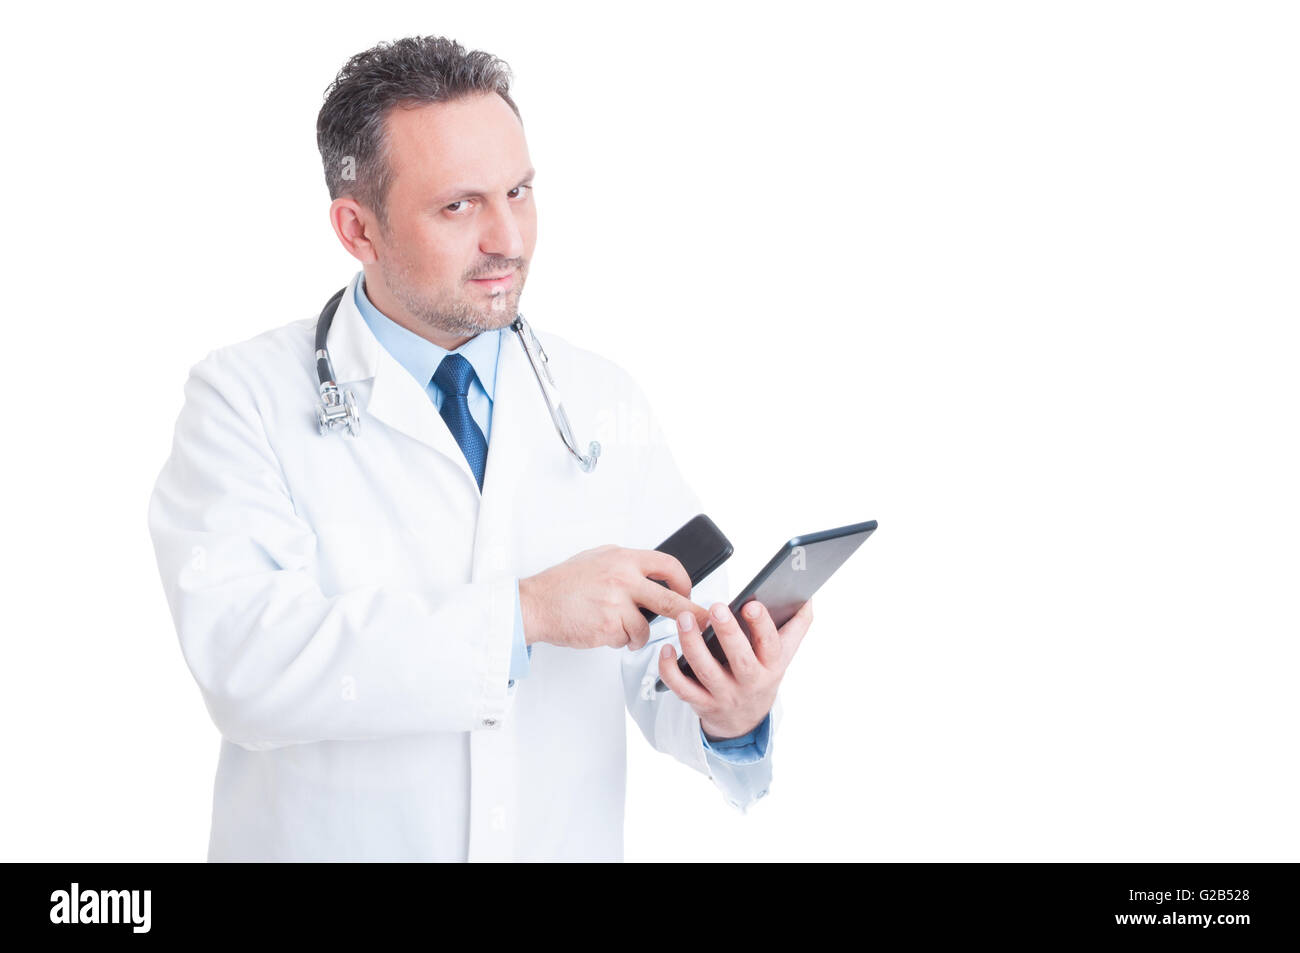 Smart and modern medic or doctor using tablet and phone isolated on white background - Stock Image